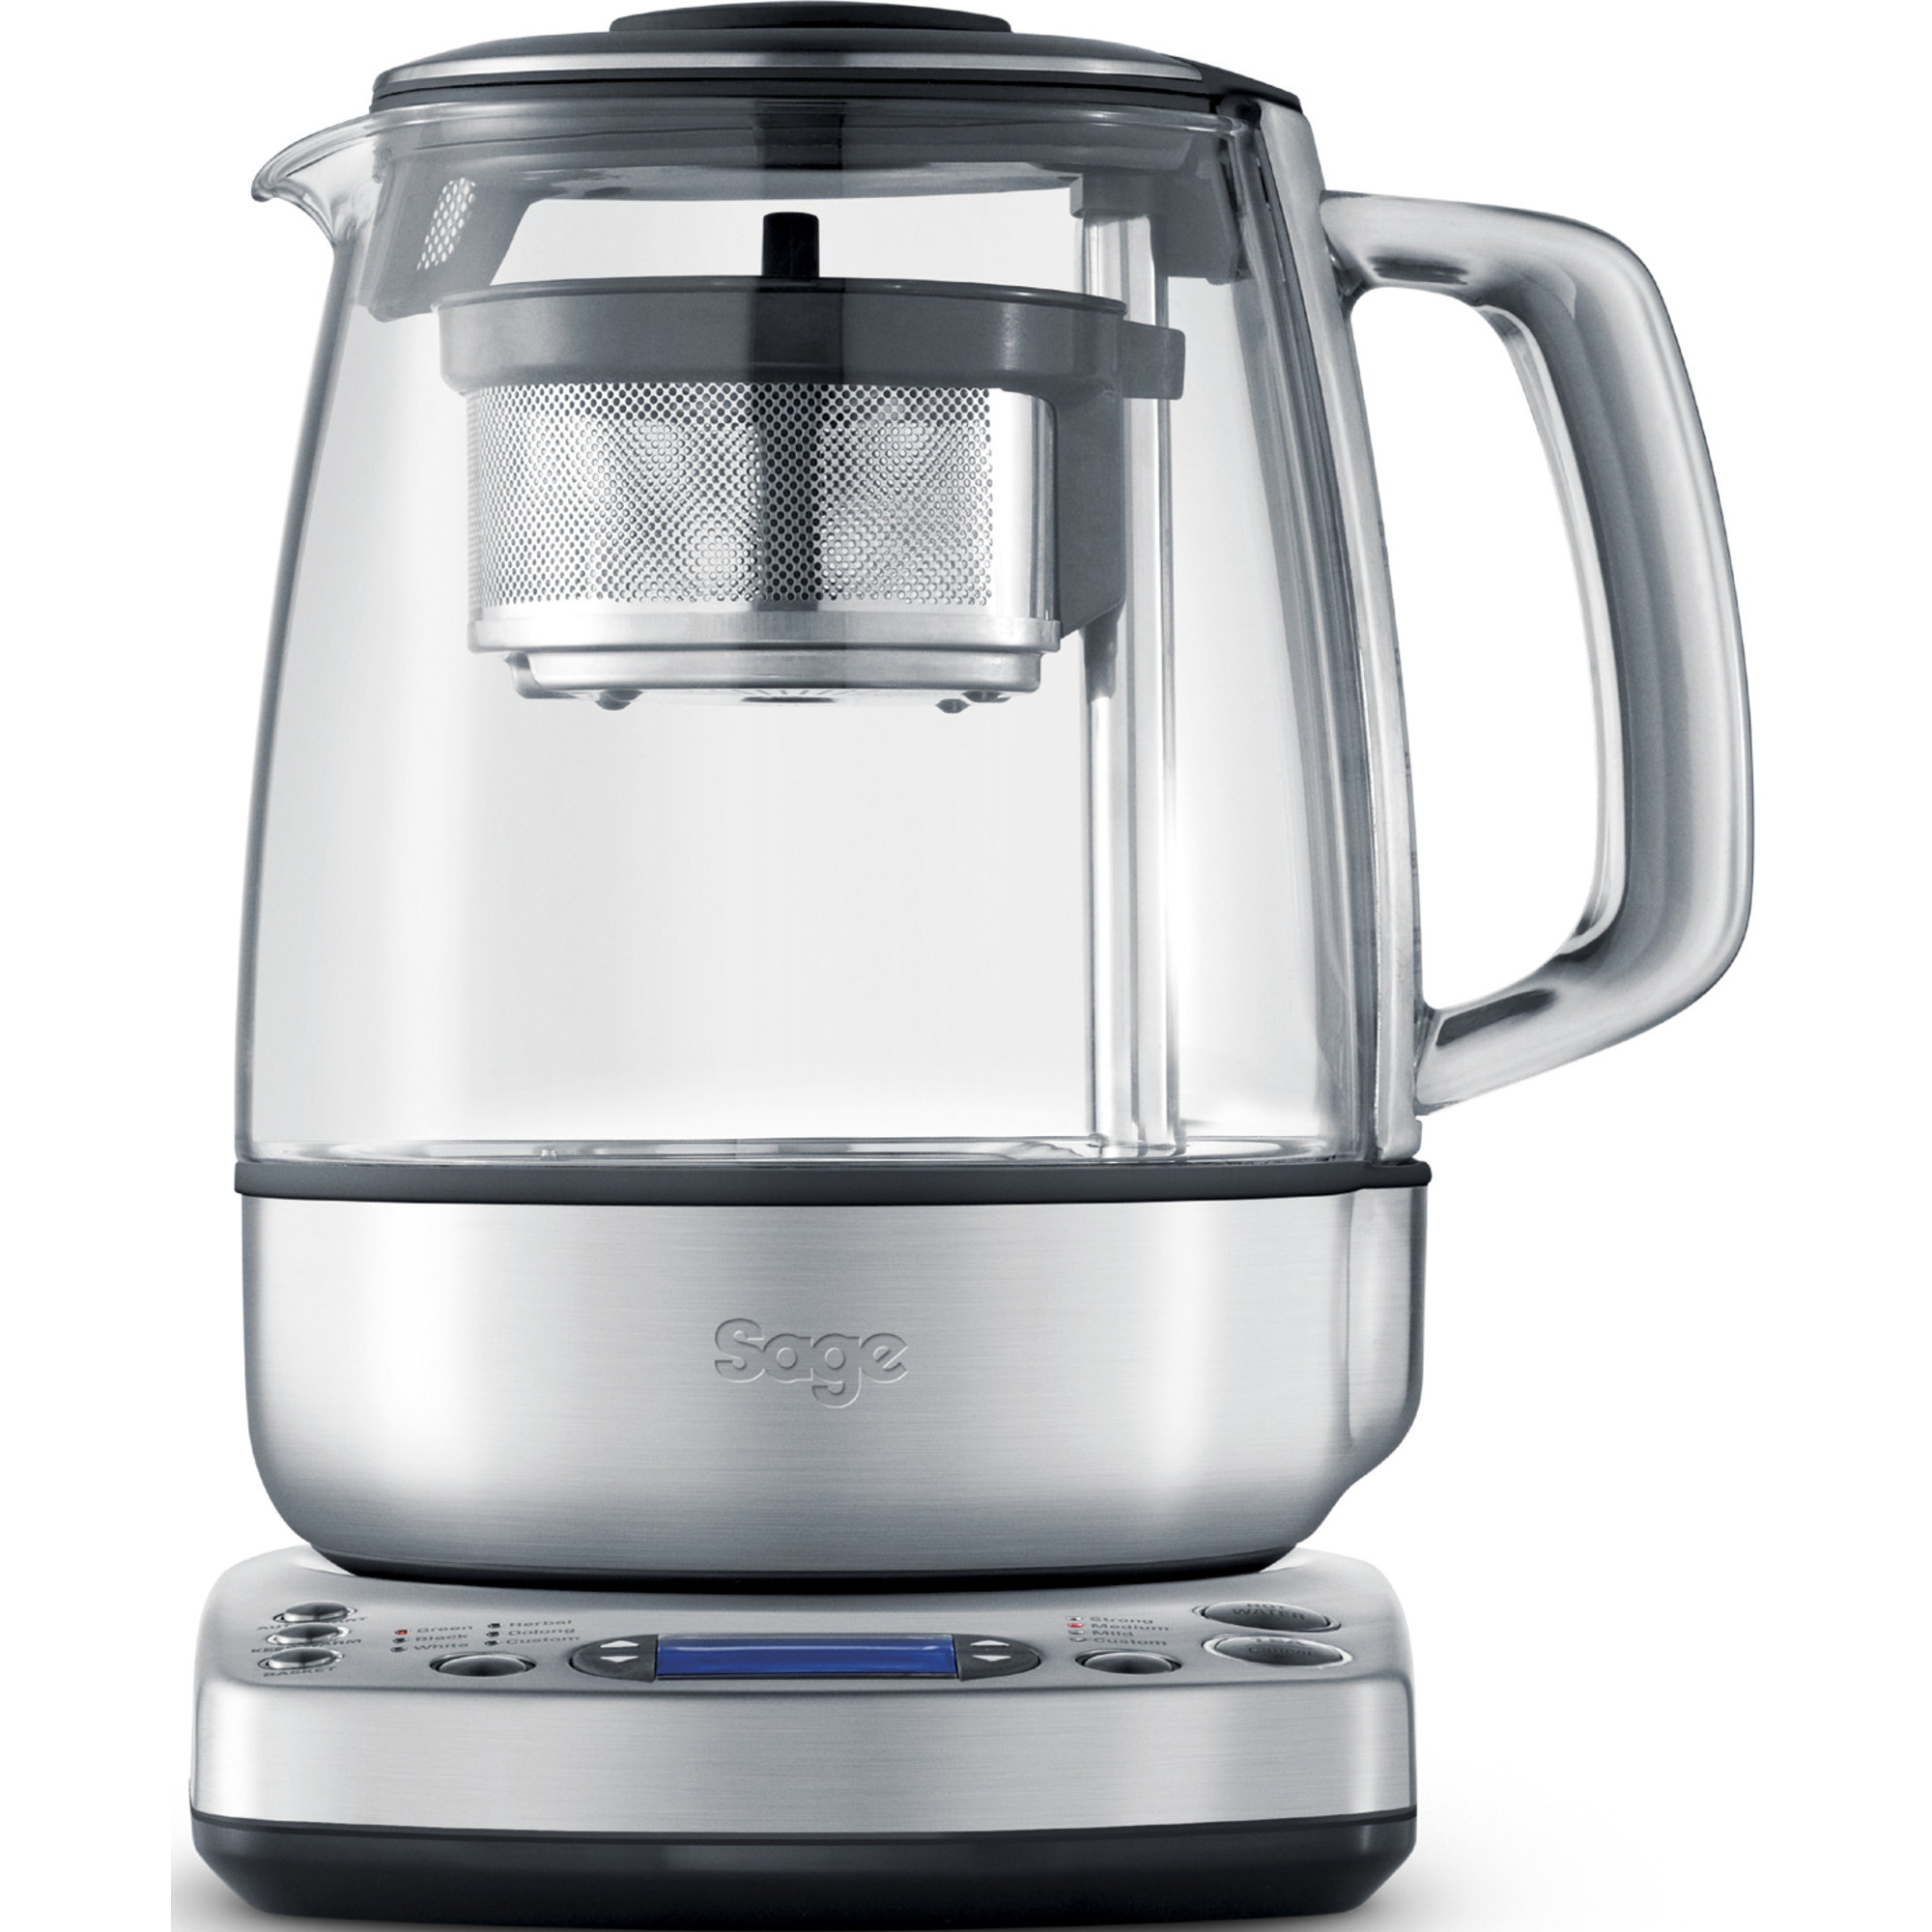 Sage Temaskin the Tea Maker 15 l